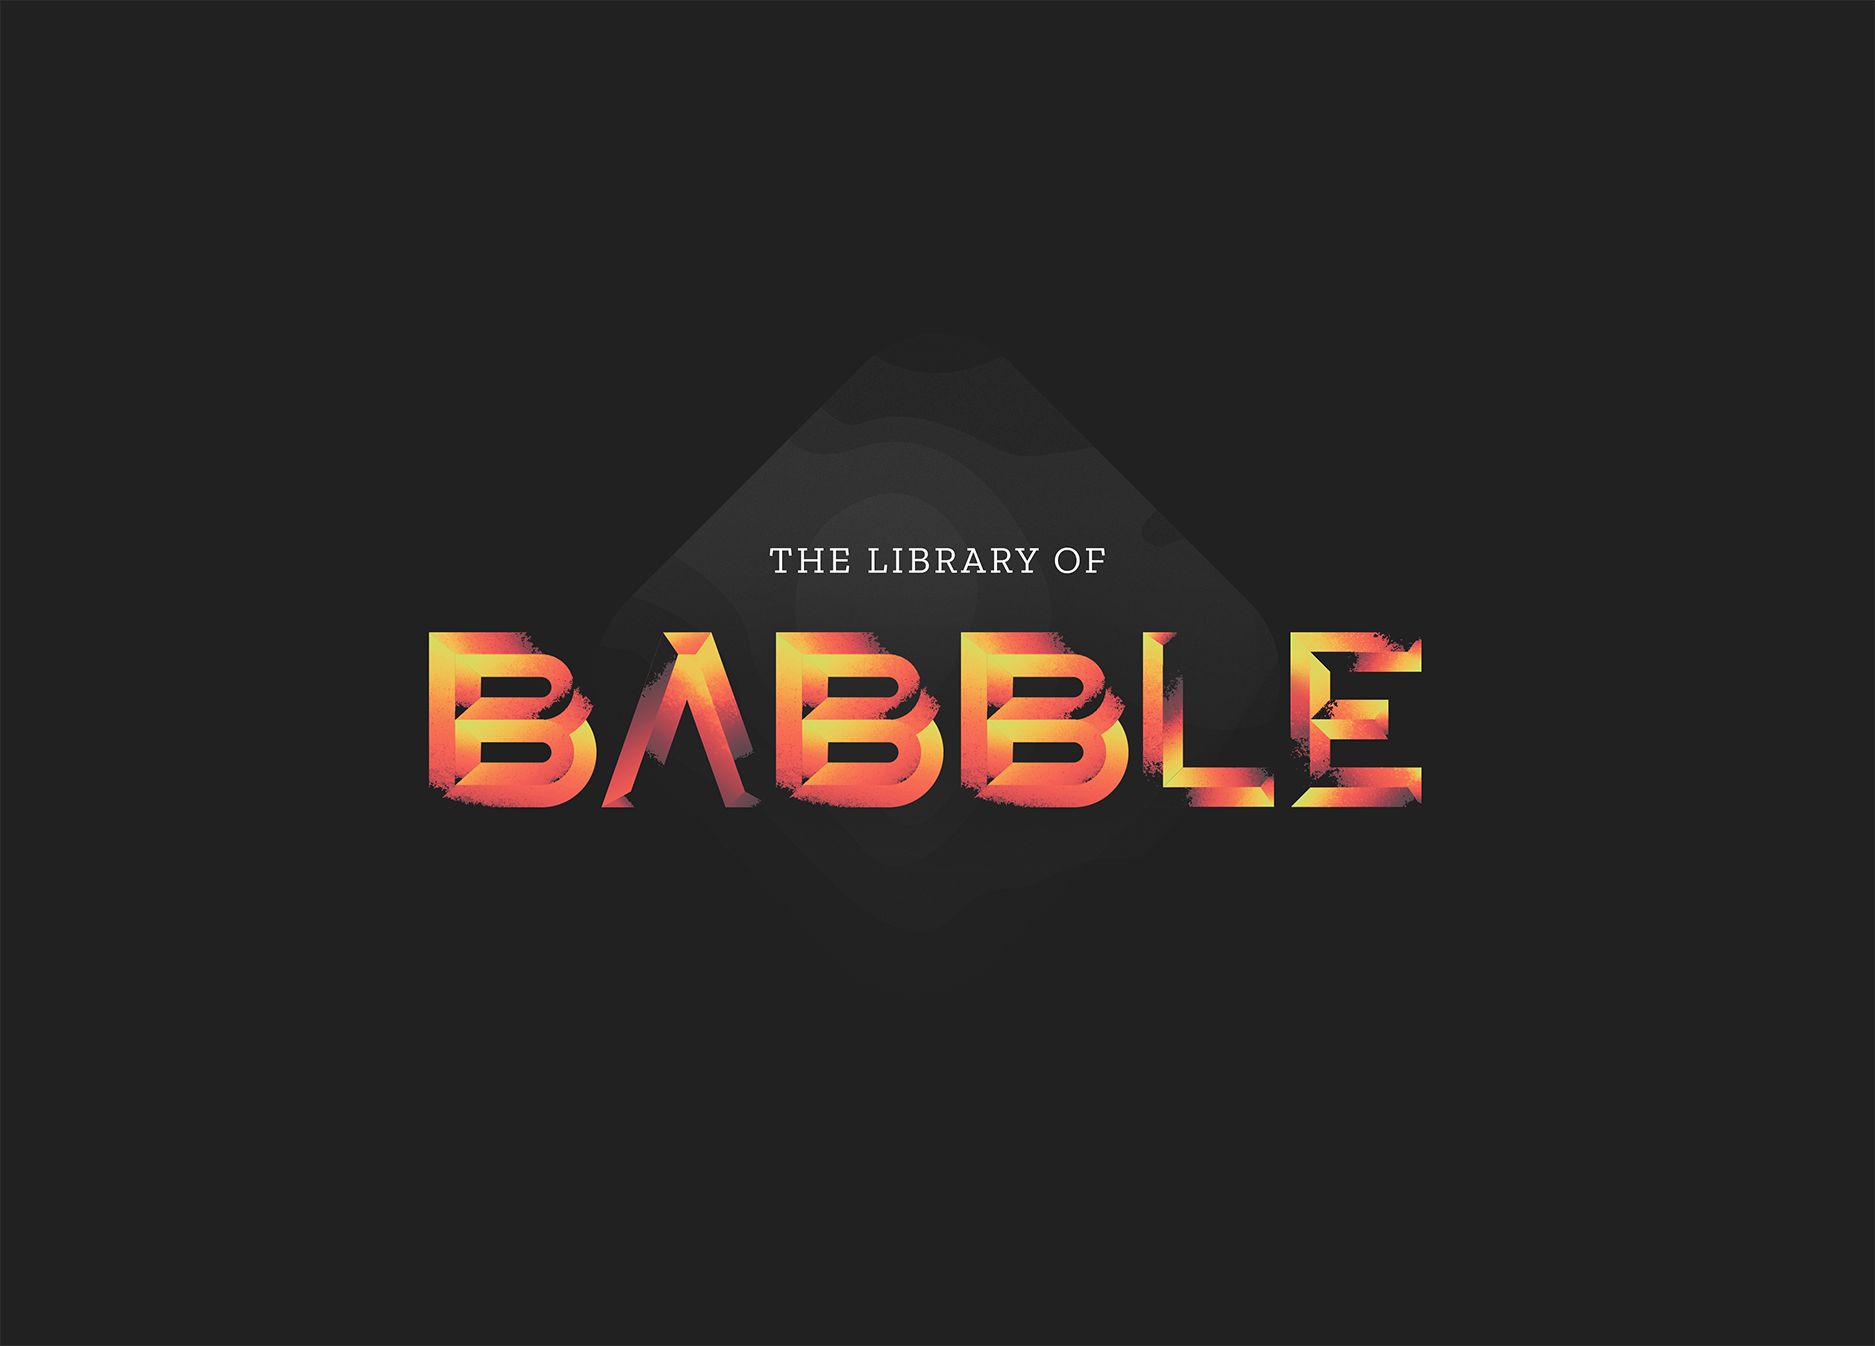 Library of Babble